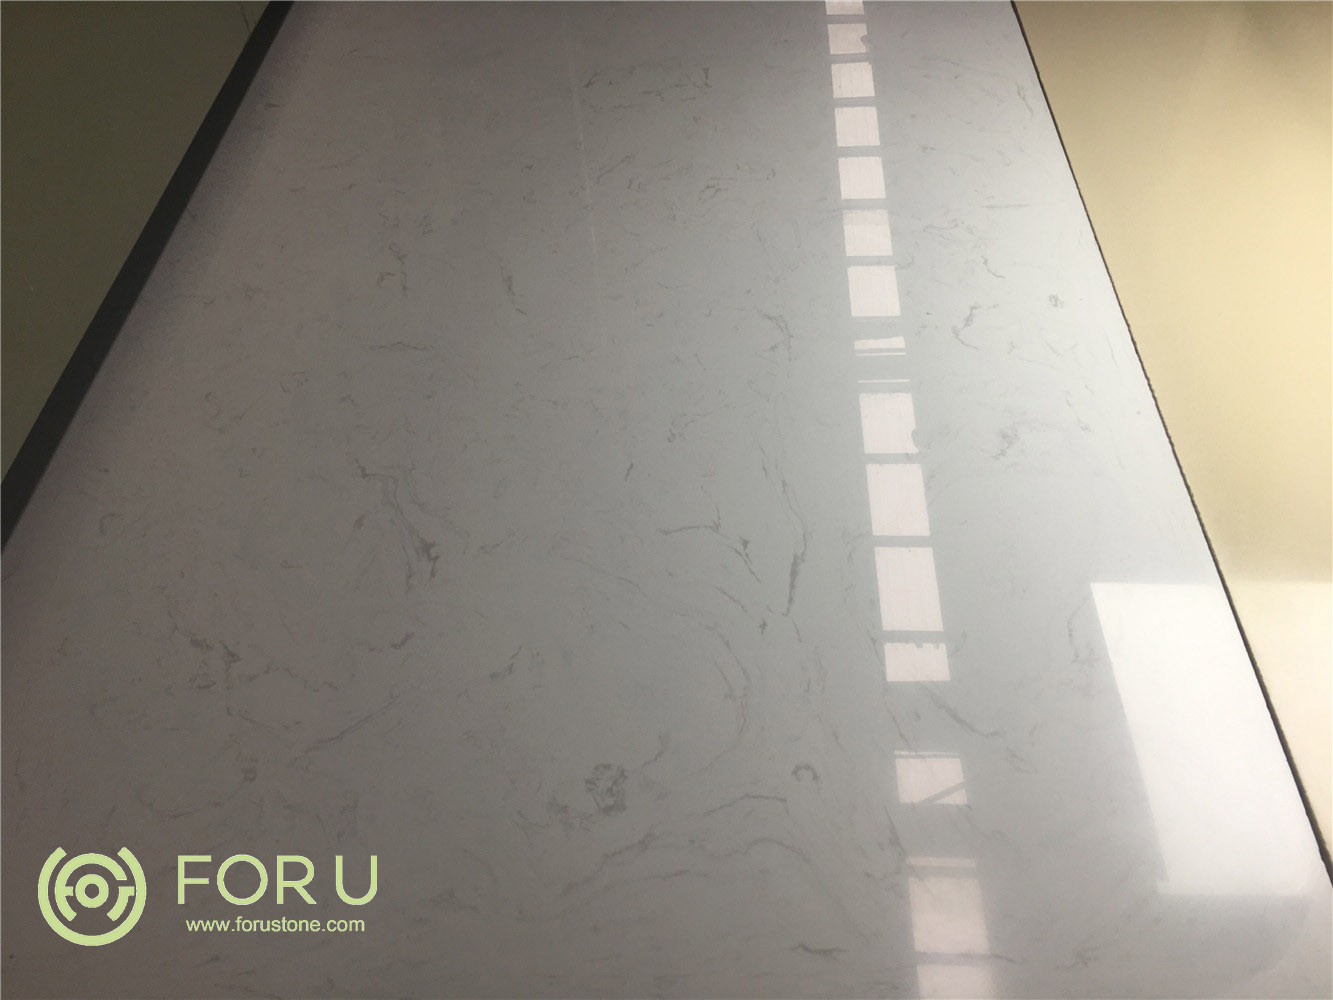 Hot Sell Pigeon White Ariston White Artificial Marble Imitation Marble Slab Manufacturers and Suppliers China - Wholesale Price - ForU